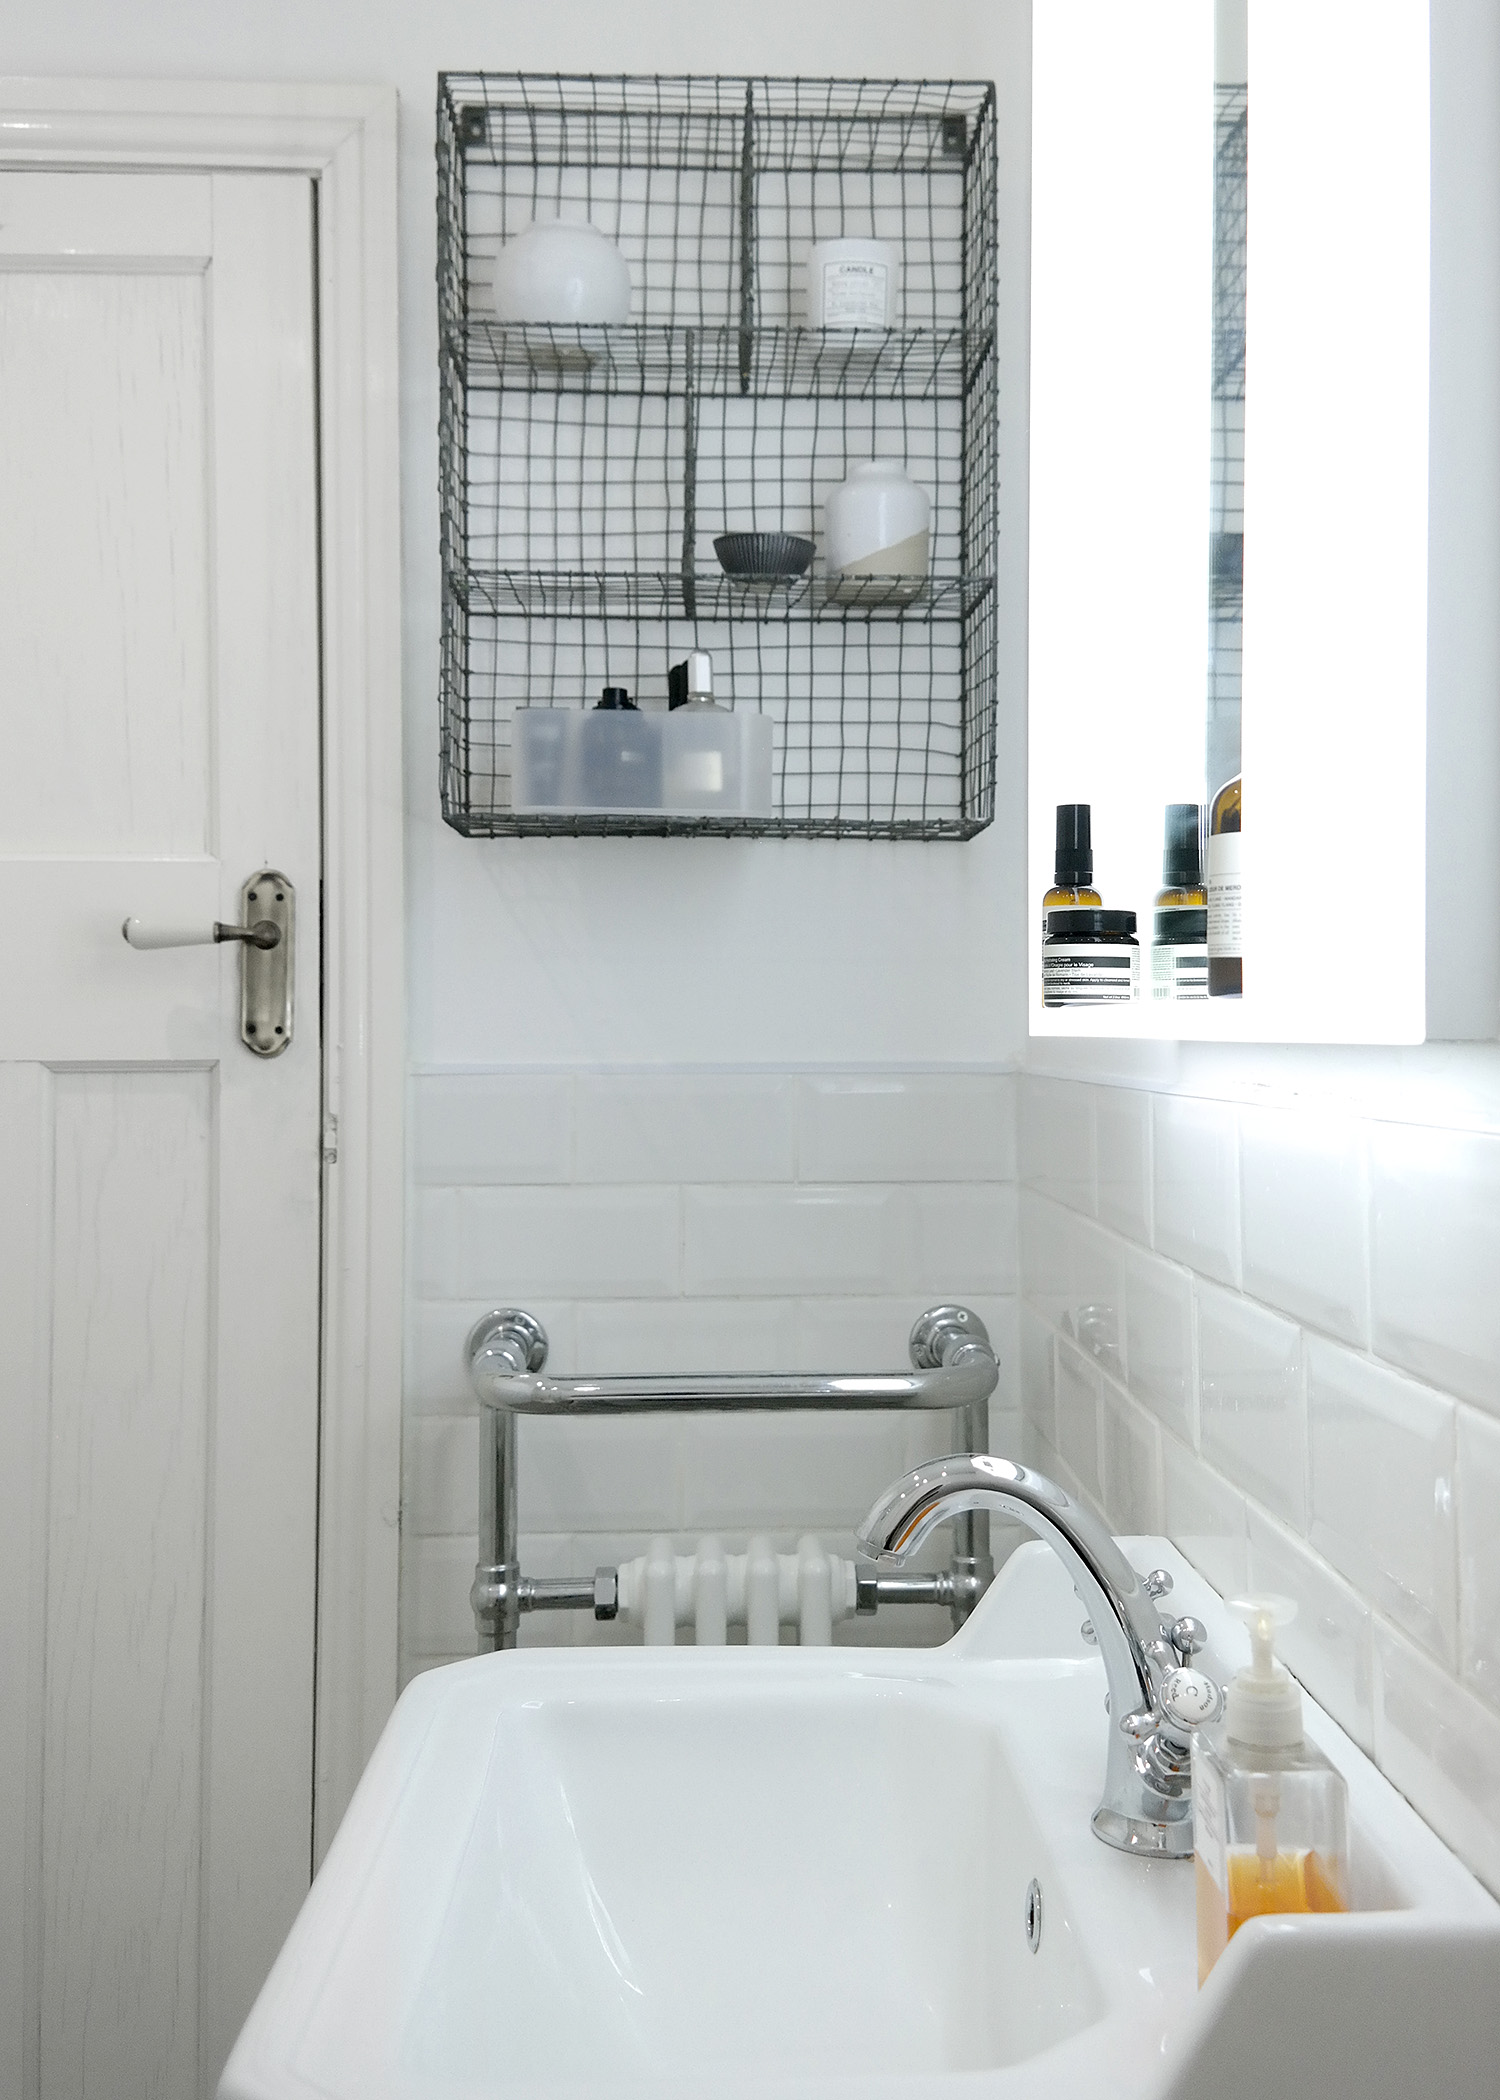 Joe's Illuminated Bathroom Mirror & Wire Locker Room Shelf | Joe's Scandi-Style Vintage Bathroom - Birmingham